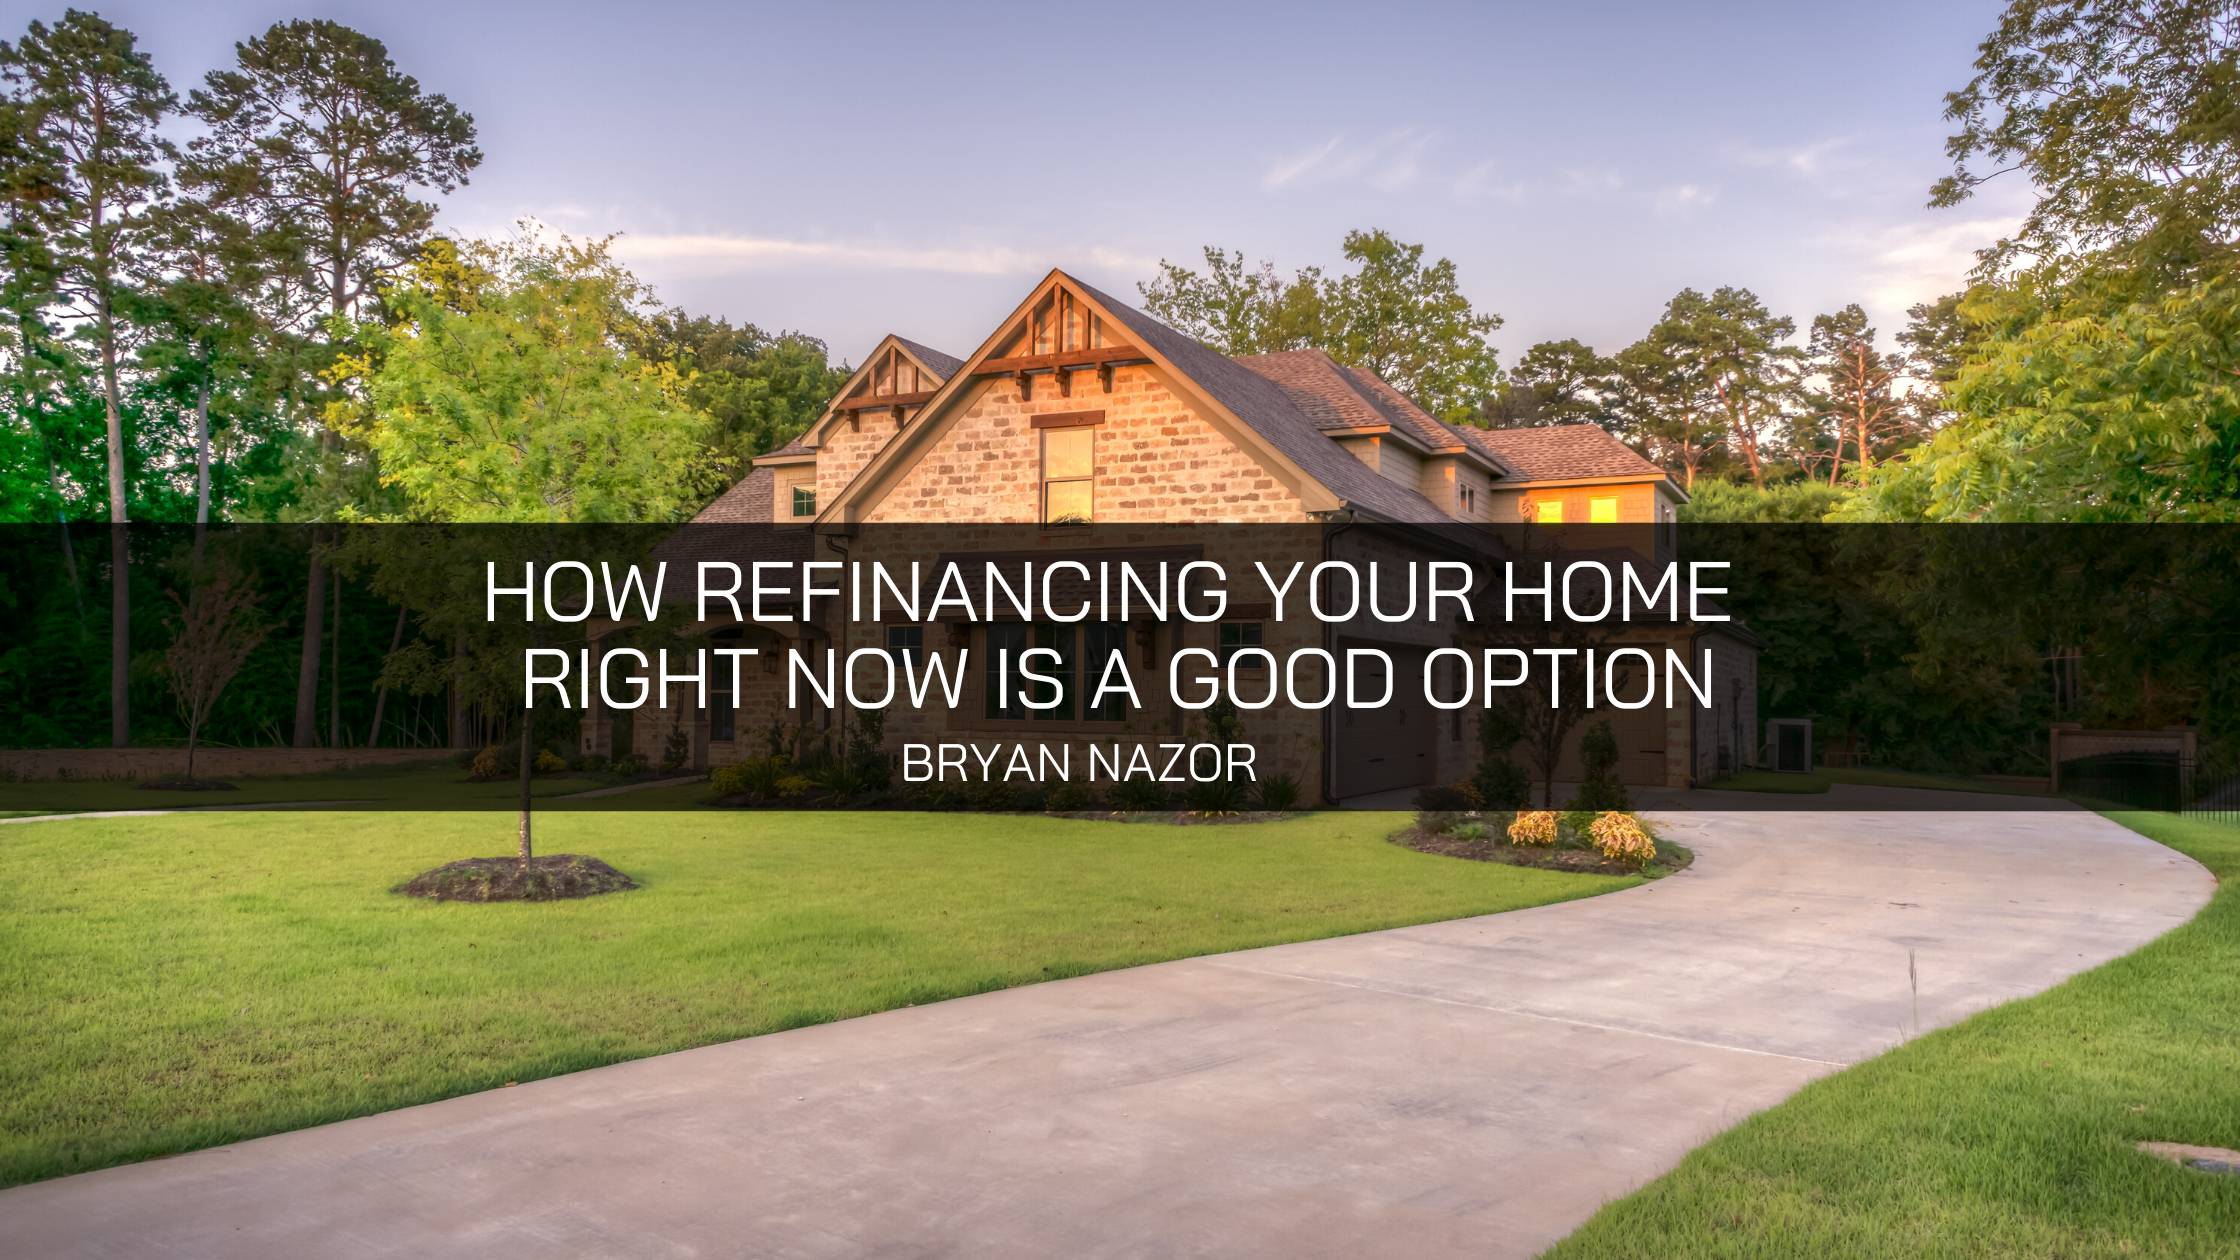 Bryan Nazor, President and Chief Operating Office at Main Street Title, Tells How Refinancing Your Home Right Now is a Good Option